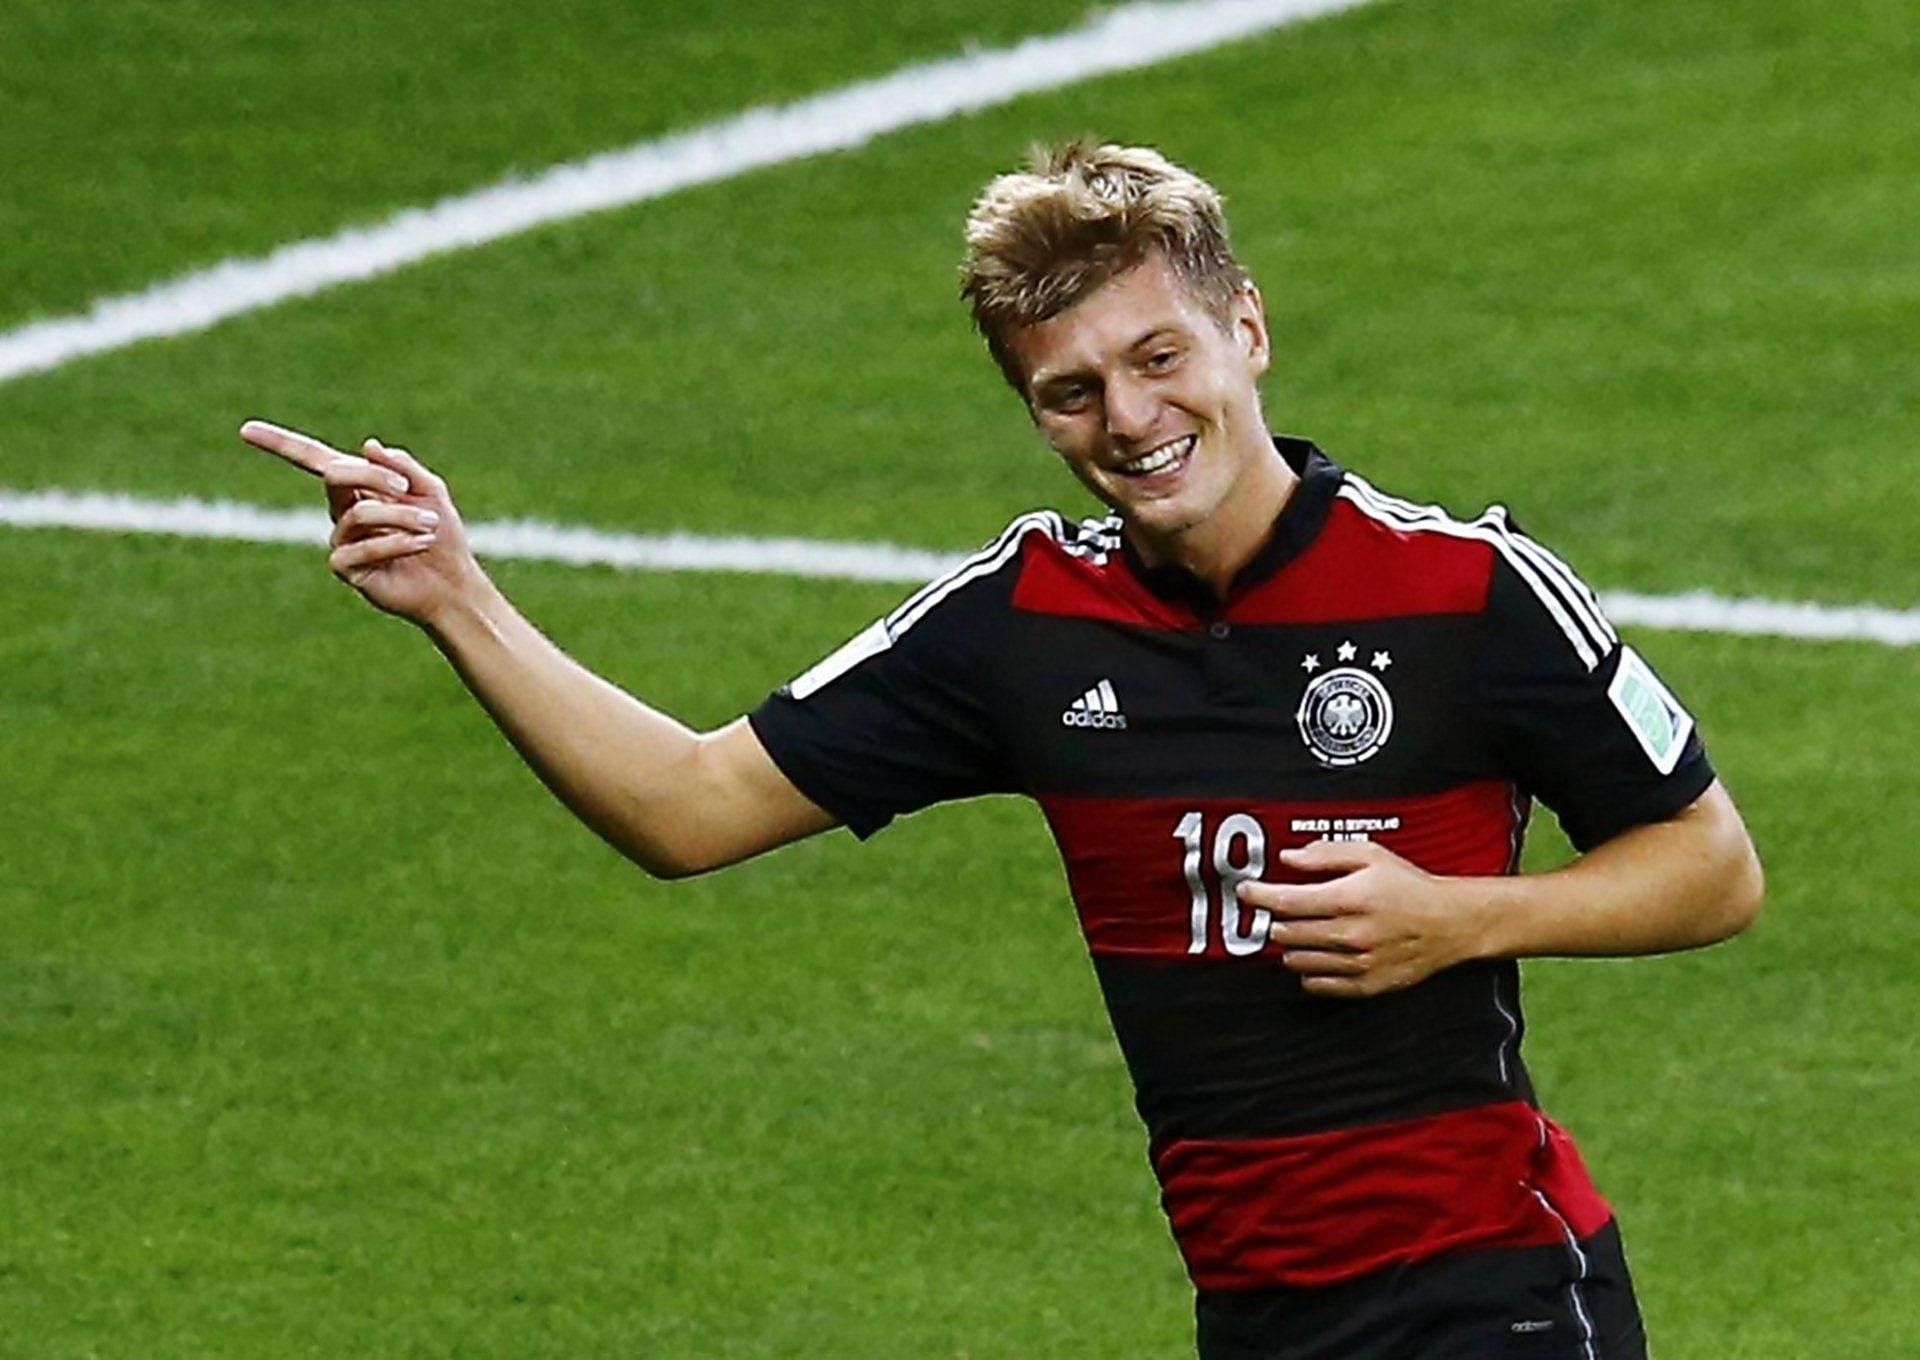 Bayern Munich's Toni Kroos confirms move to Real Madrid